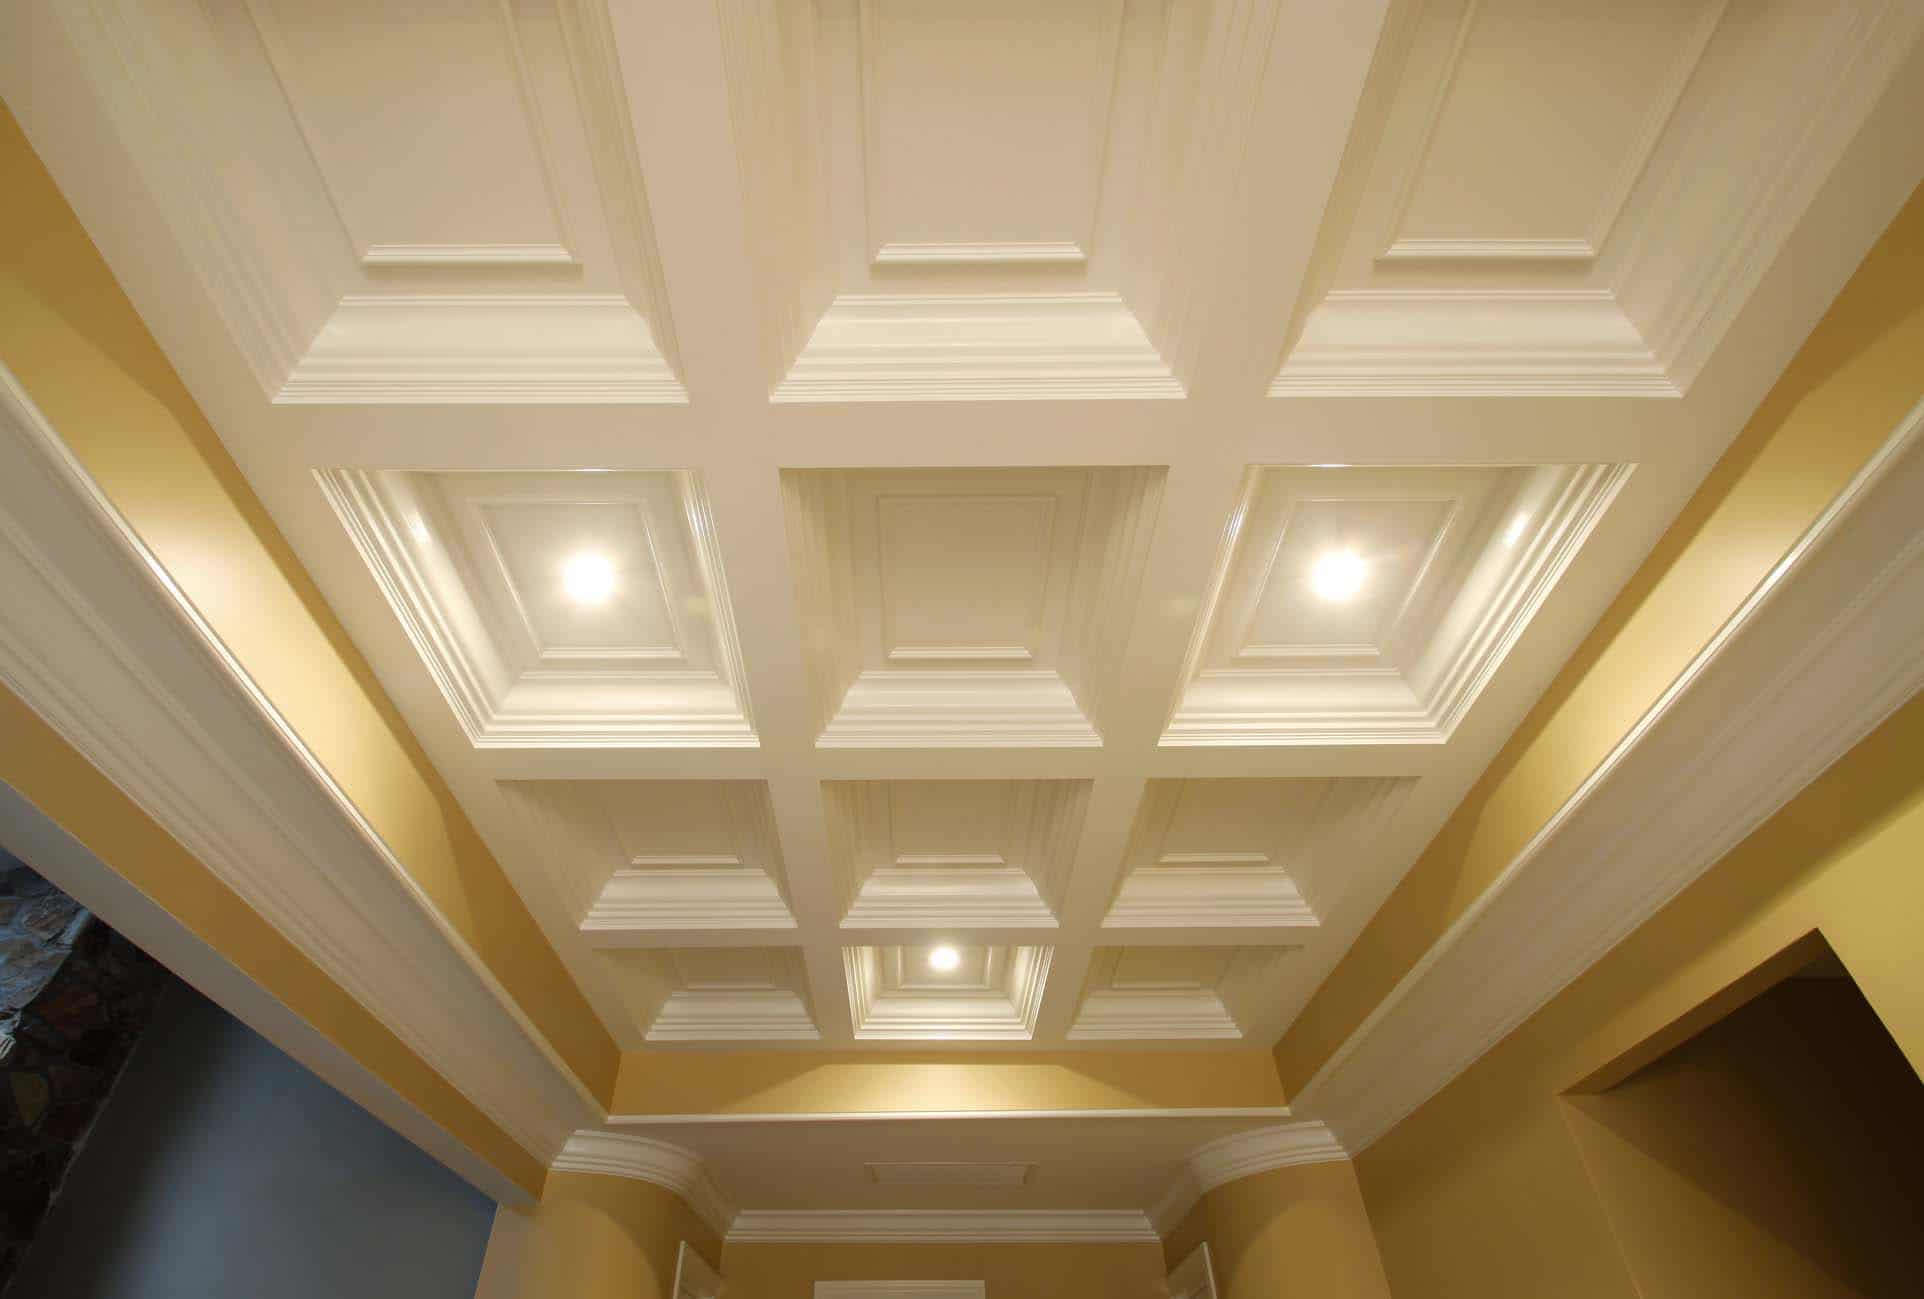 coffered ceiling design ceiling beams coffer ceiling panels. Black Bedroom Furniture Sets. Home Design Ideas